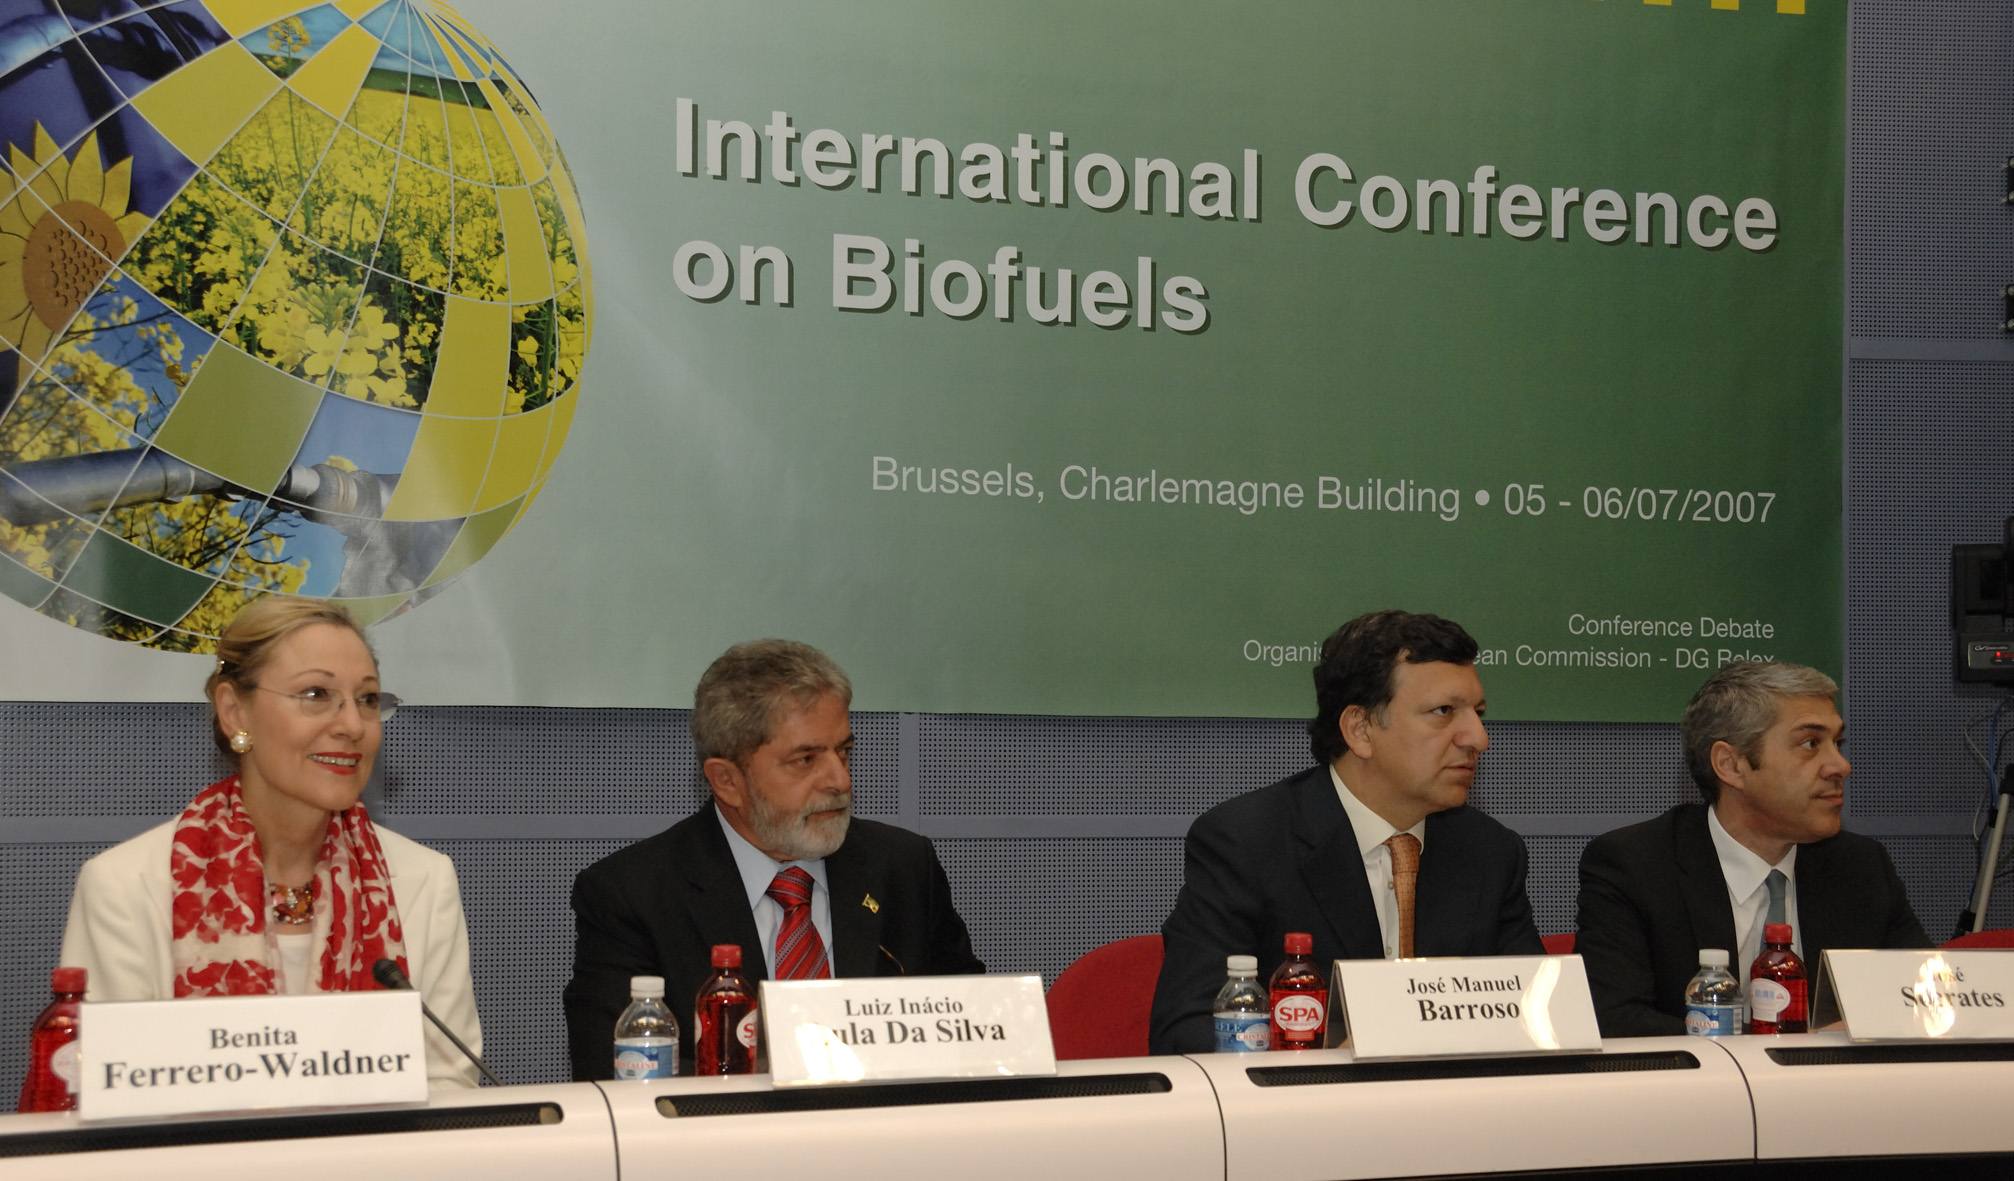 International Conference on Biofuels